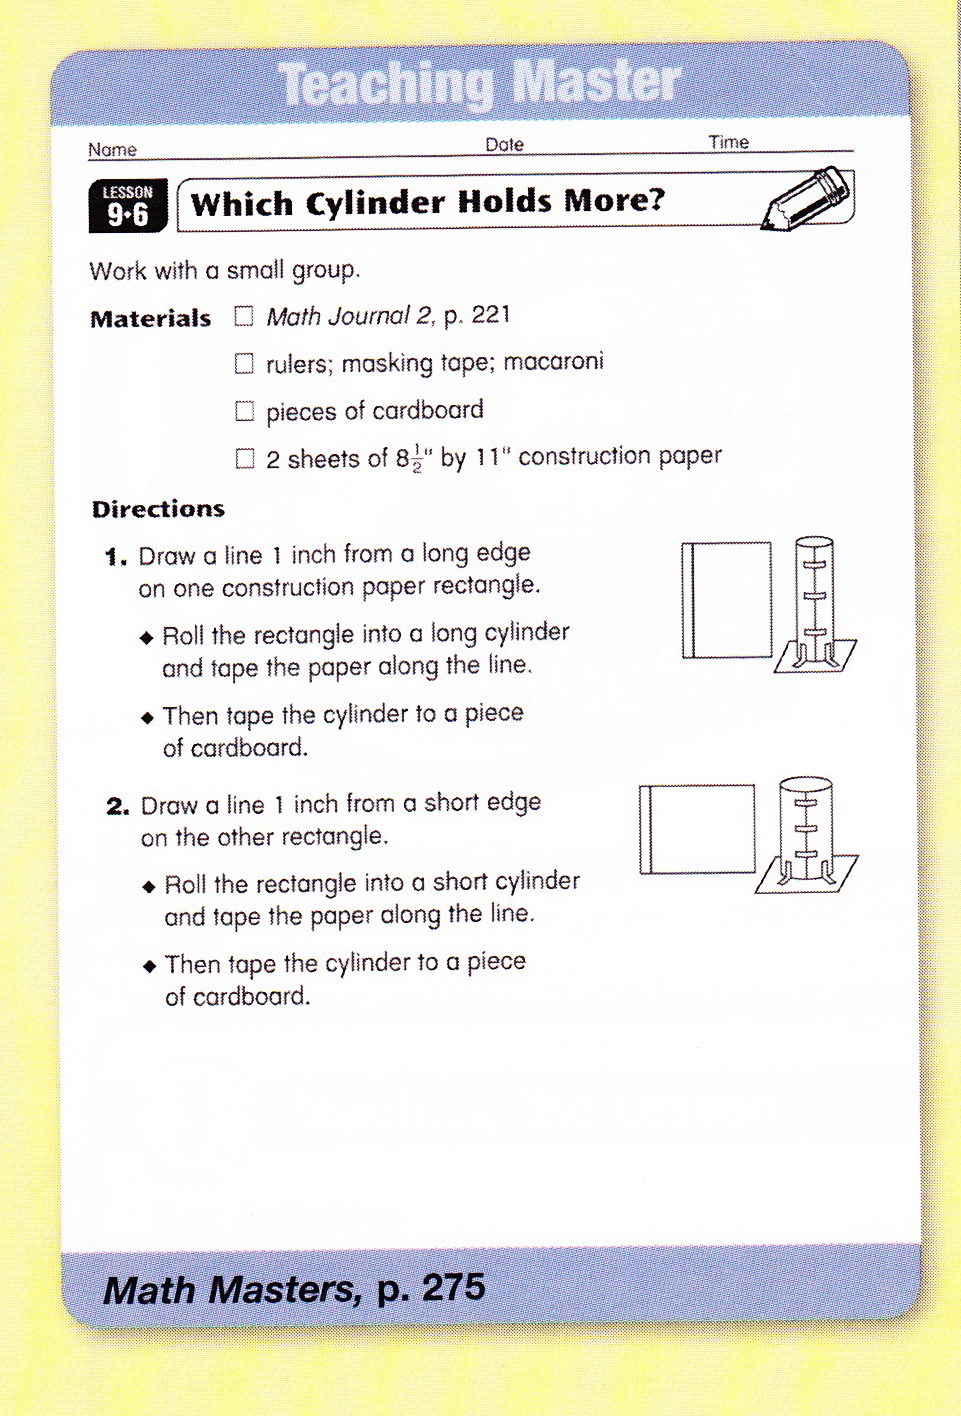 Free Worksheet Everyday Mathematics Worksheets 3acts popcorn picker dydan 2012 jul 2 from everyday math